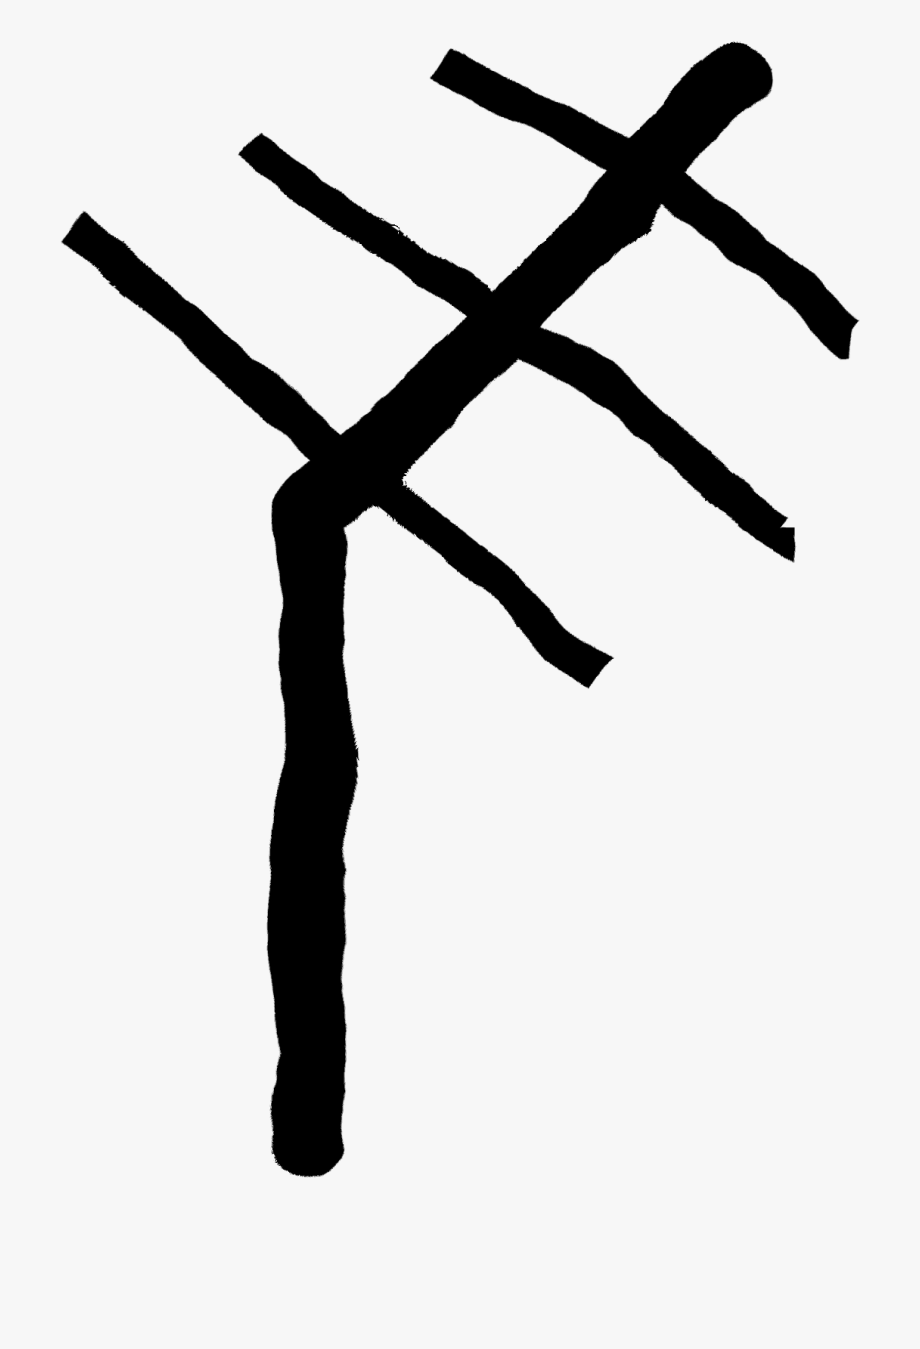 Antenna clipart clipart free download Tv Antenna 1 - Tv Antenna Clipart #1027261 - Free Cliparts on ... clipart free download